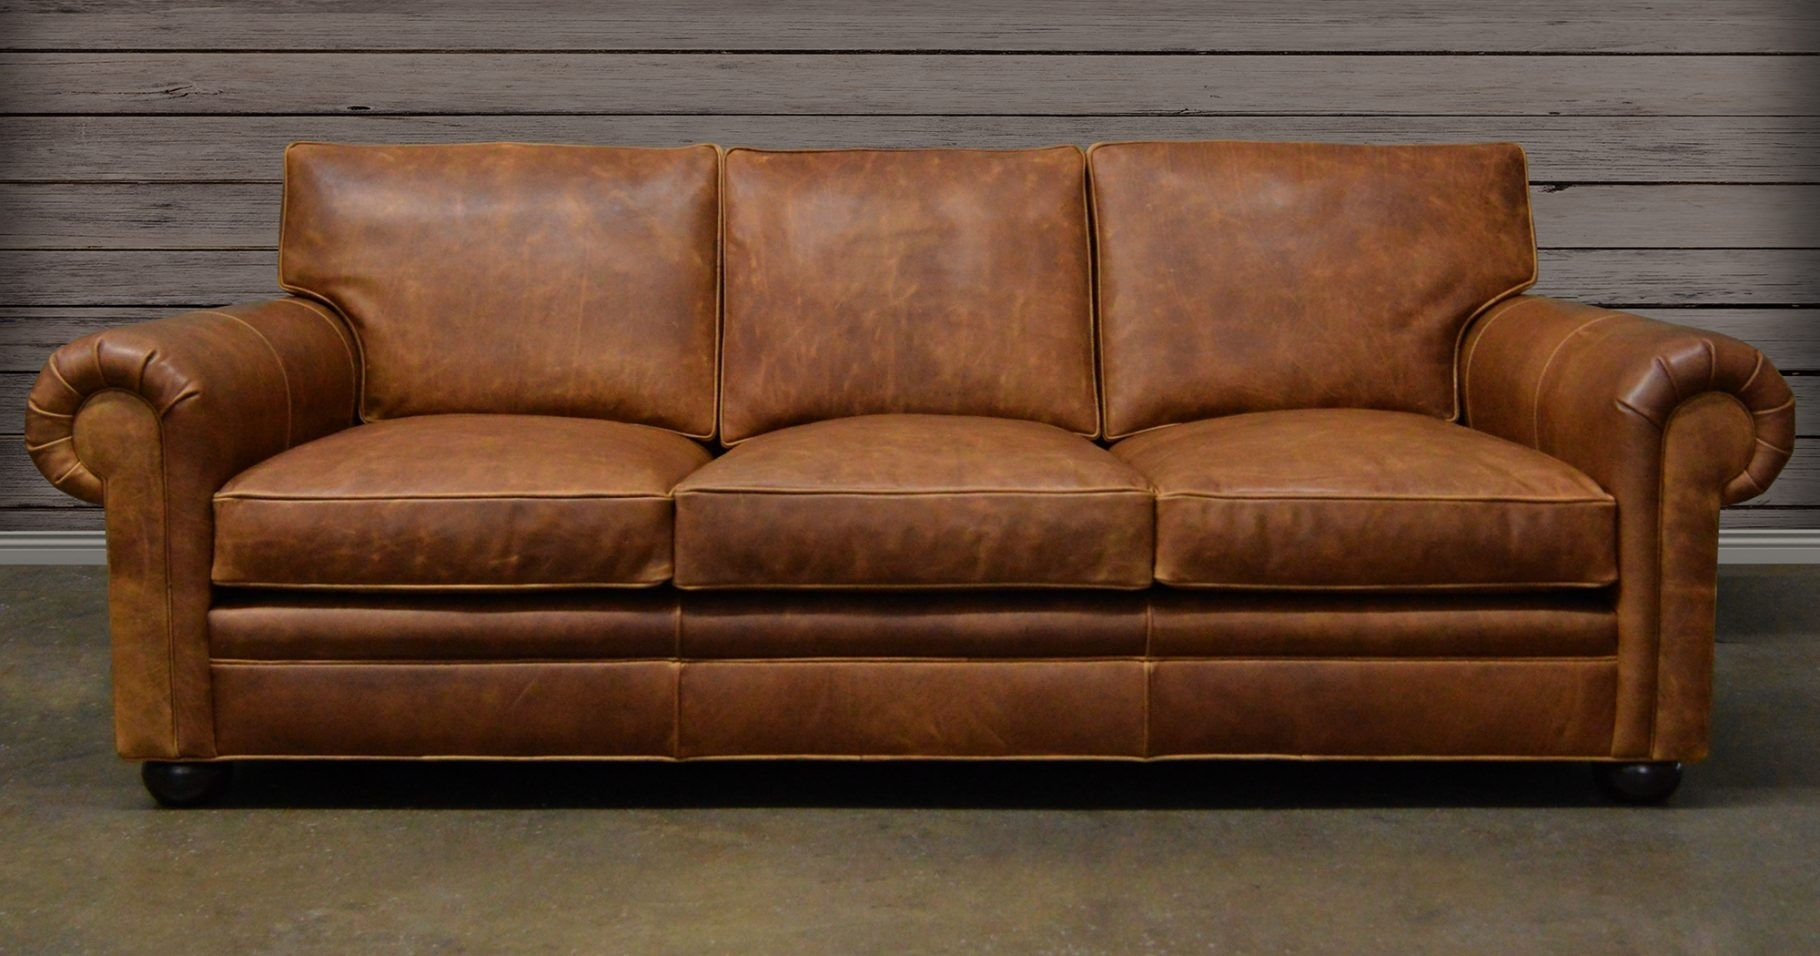 North Carolina Leather Sofa | Bestedieetplan For Made In North Carolina Sectional Sofas (Image 4 of 10)